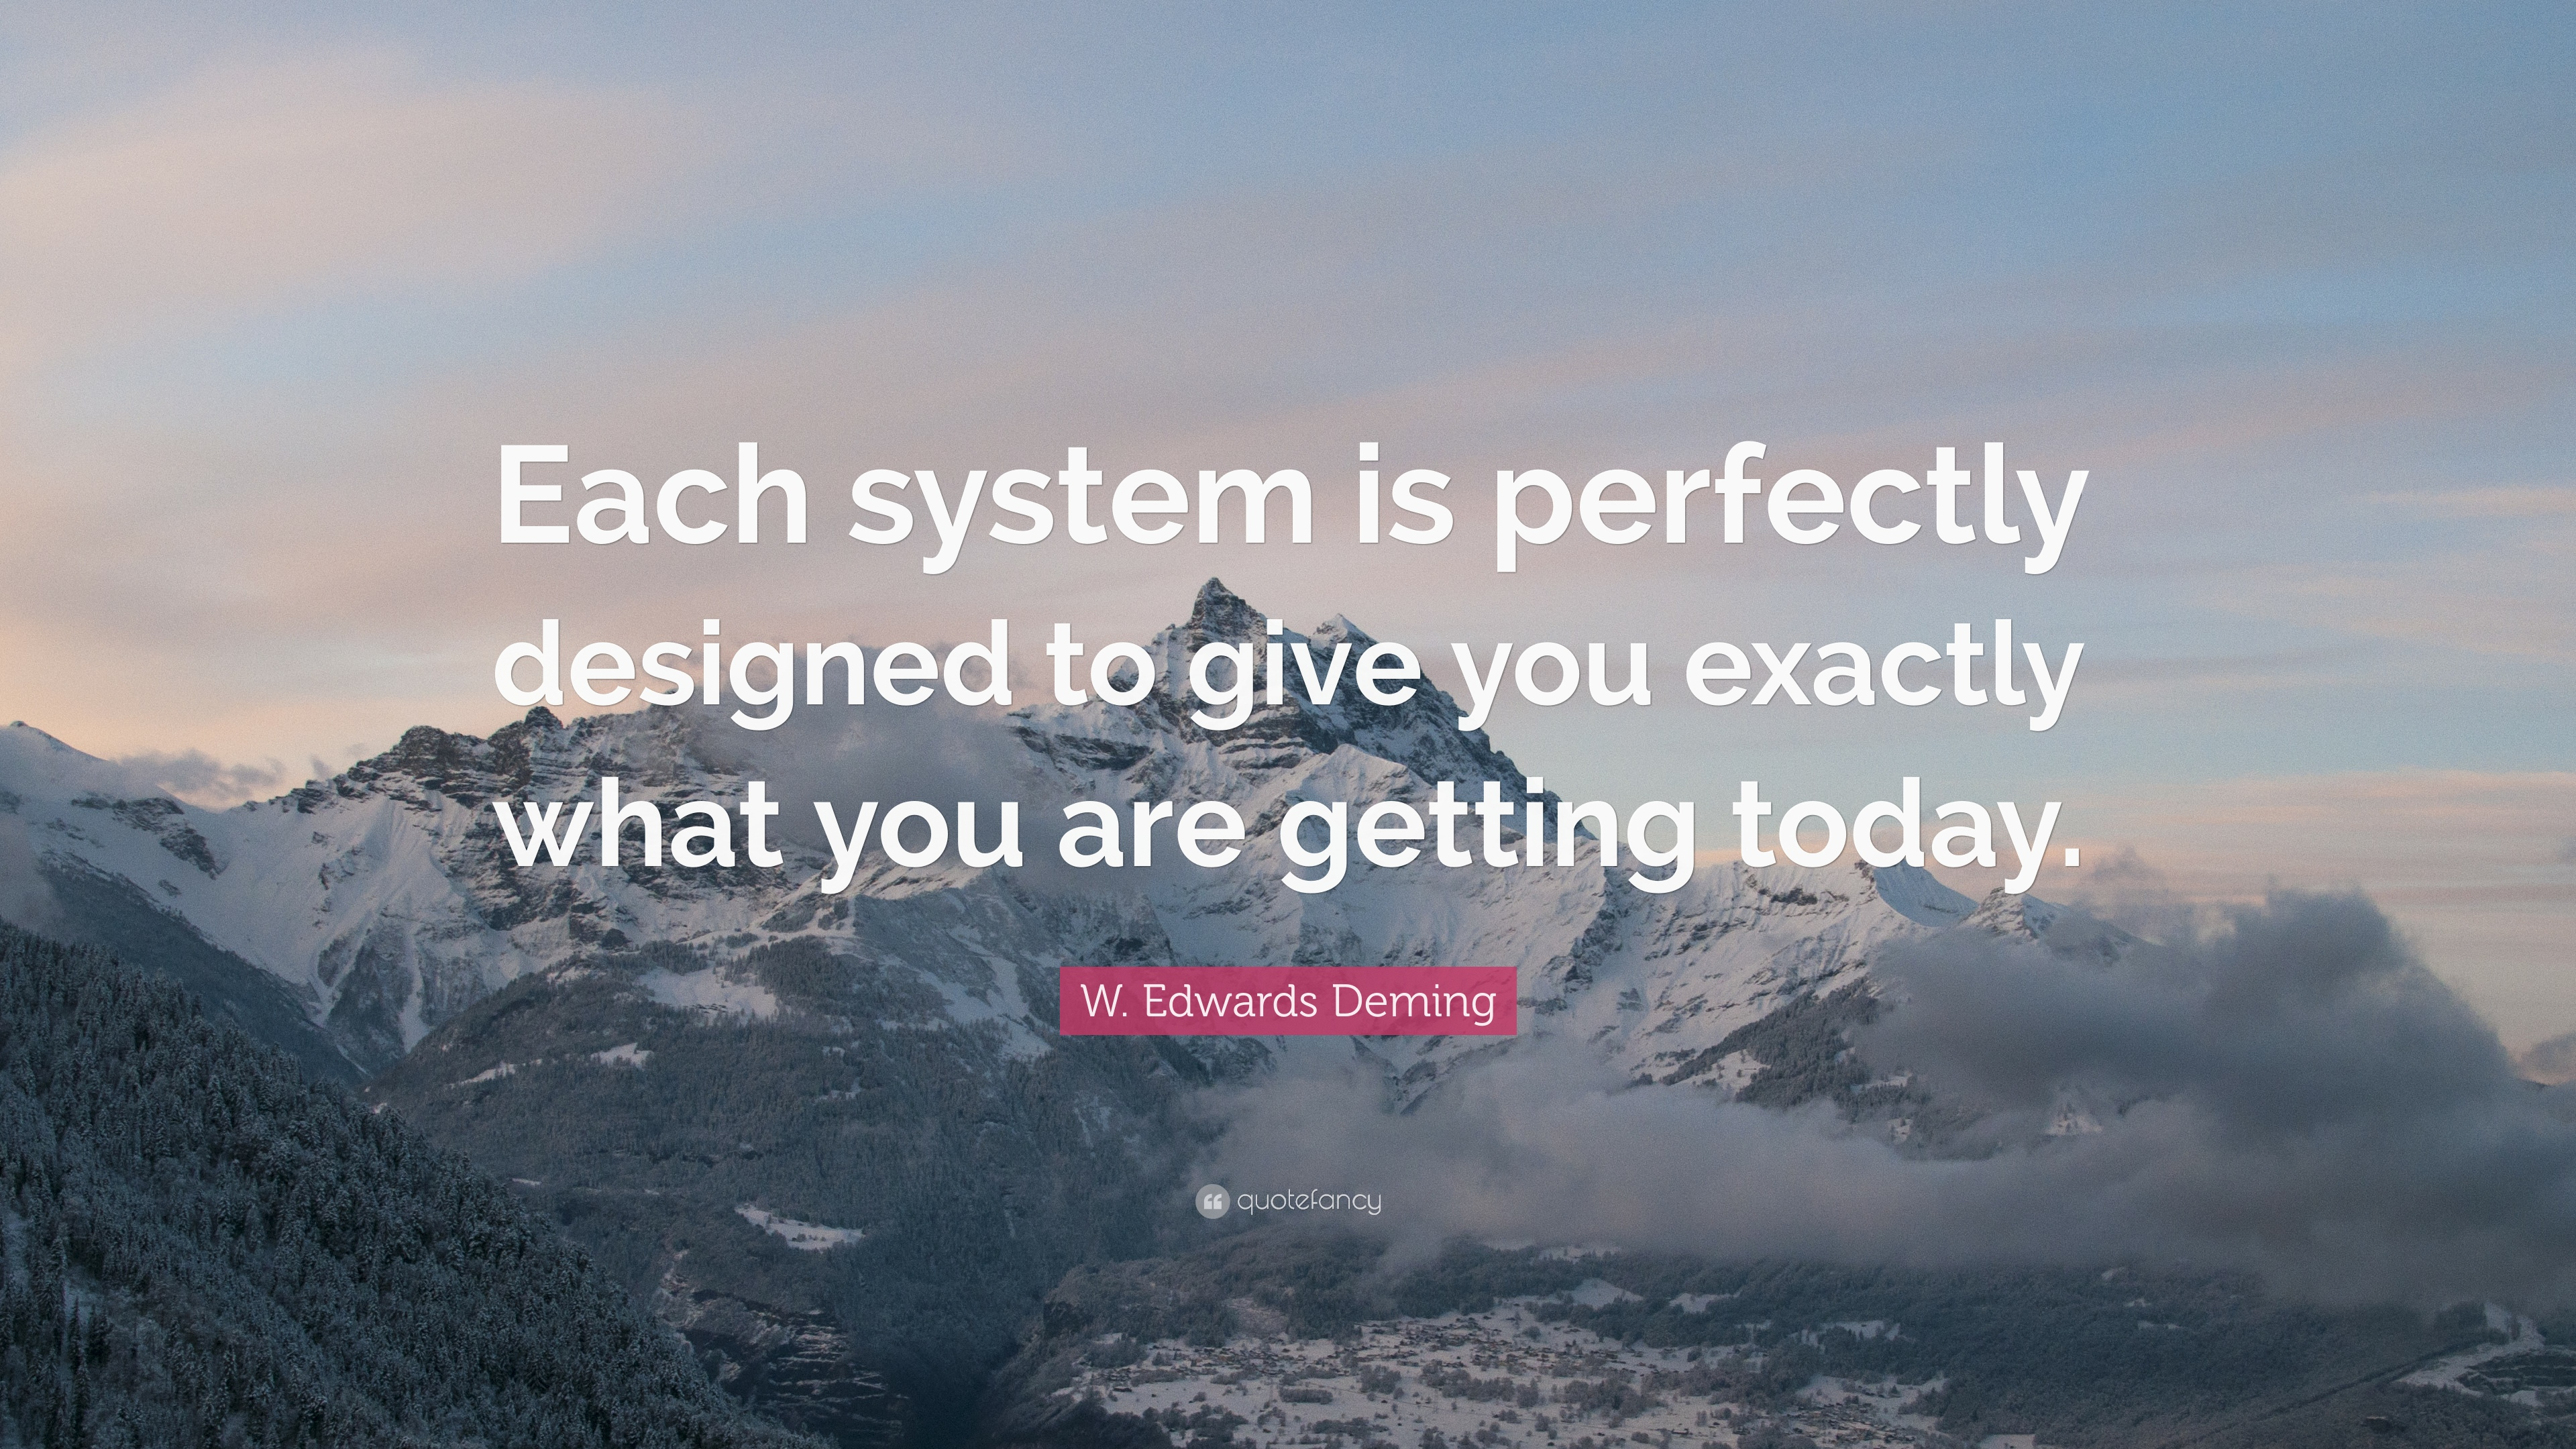 W Edwards Deming Quote Each System Is Perfectly Designed To Give You Exactly What You Are Getting Today 12 Wallpapers Quotefancy